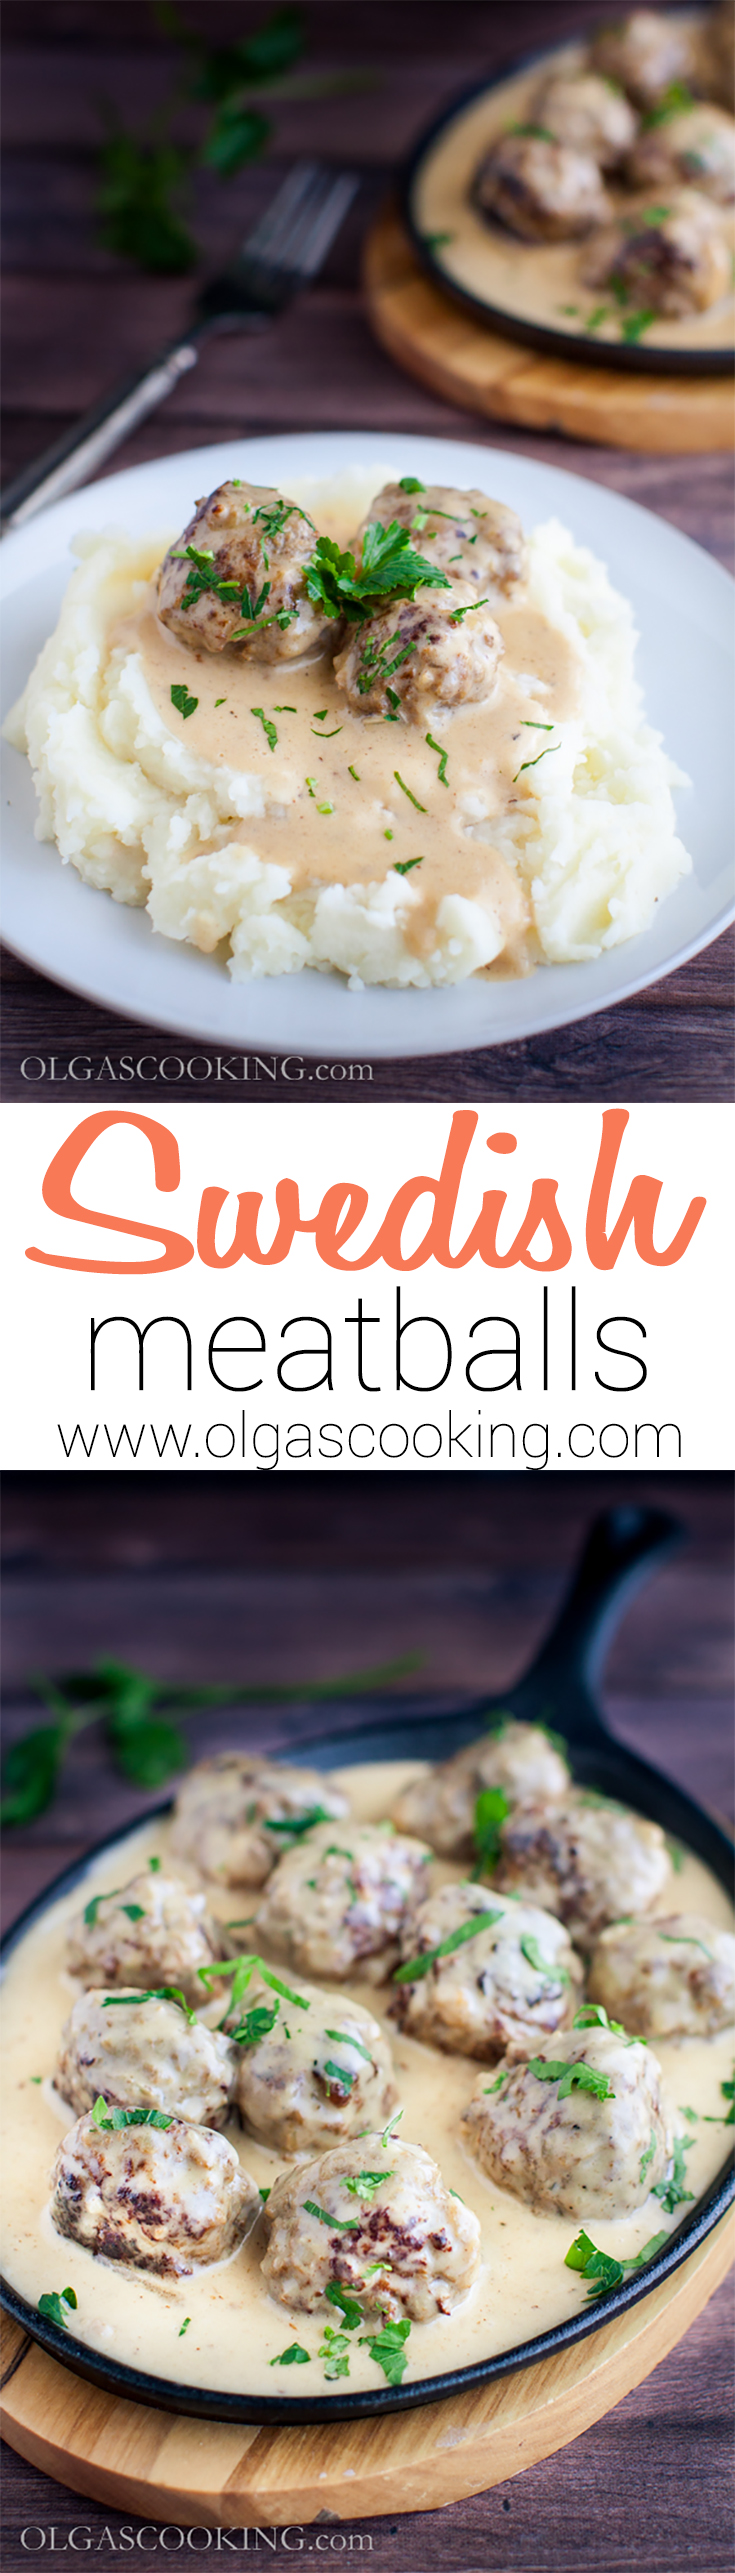 Swedish Meatballs smothered in gravy